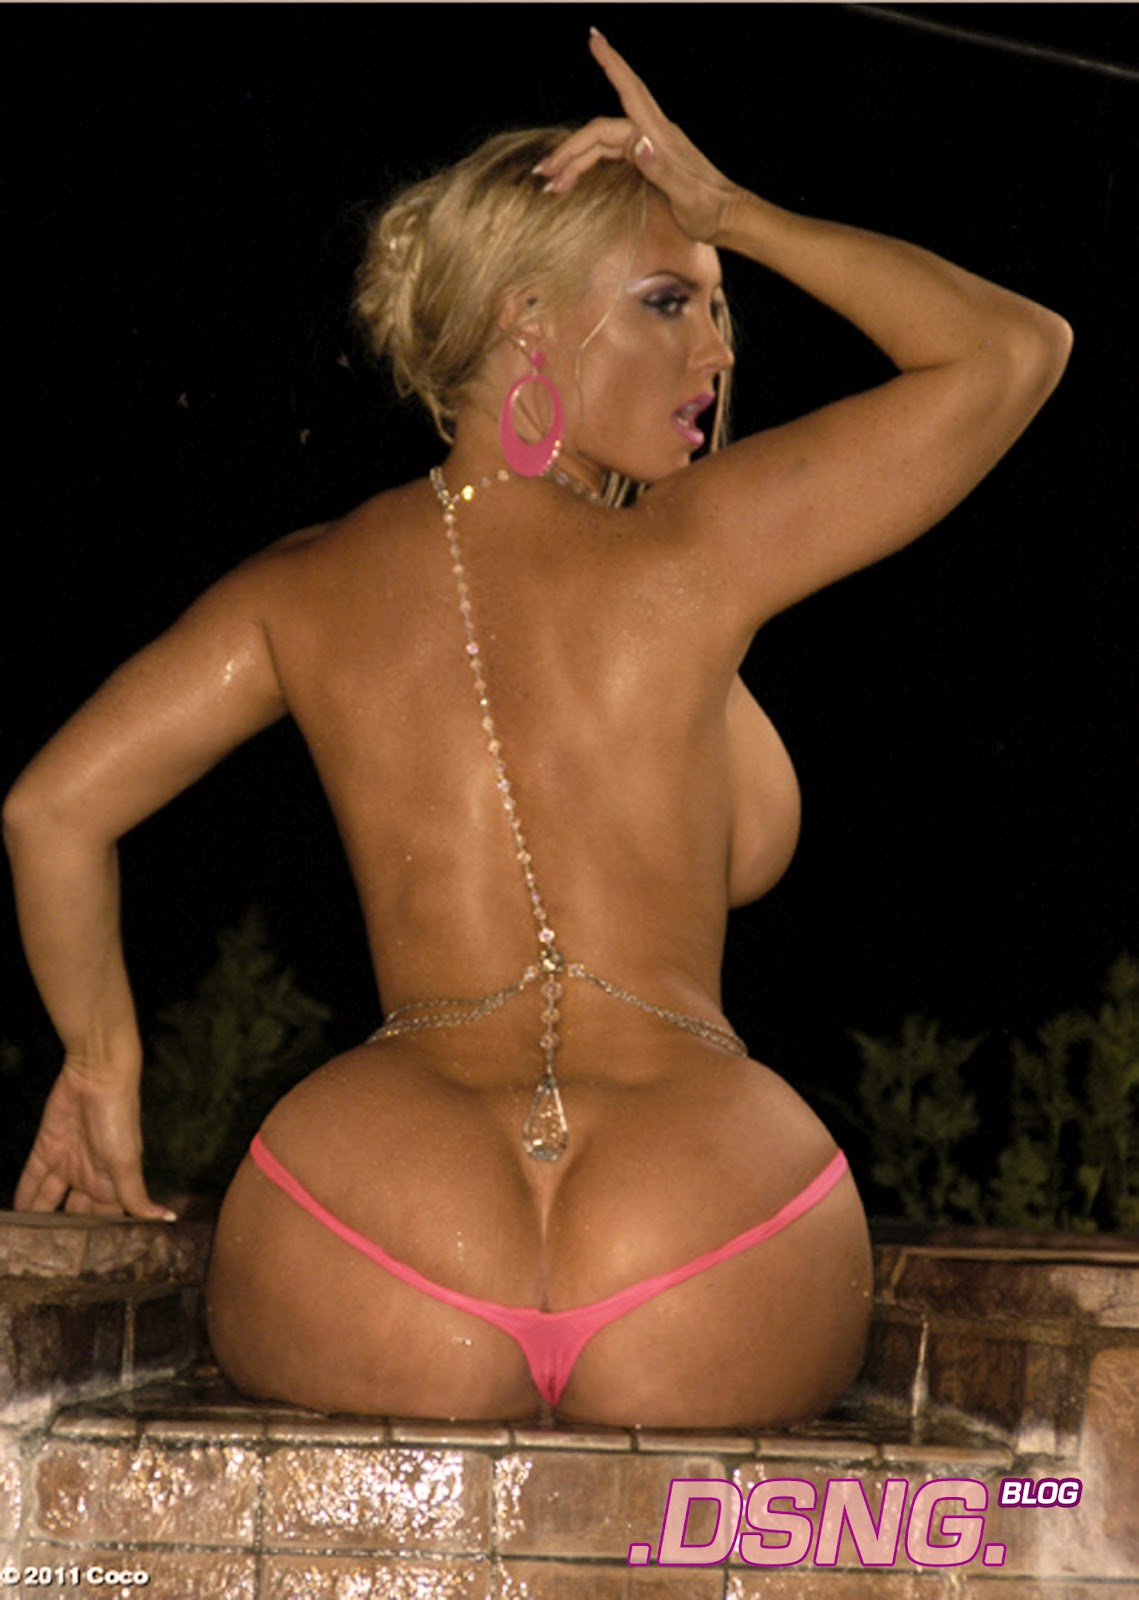 Dsngs Sci Fi Megaverse Coco Austin - Classic Photo Gallery-1573